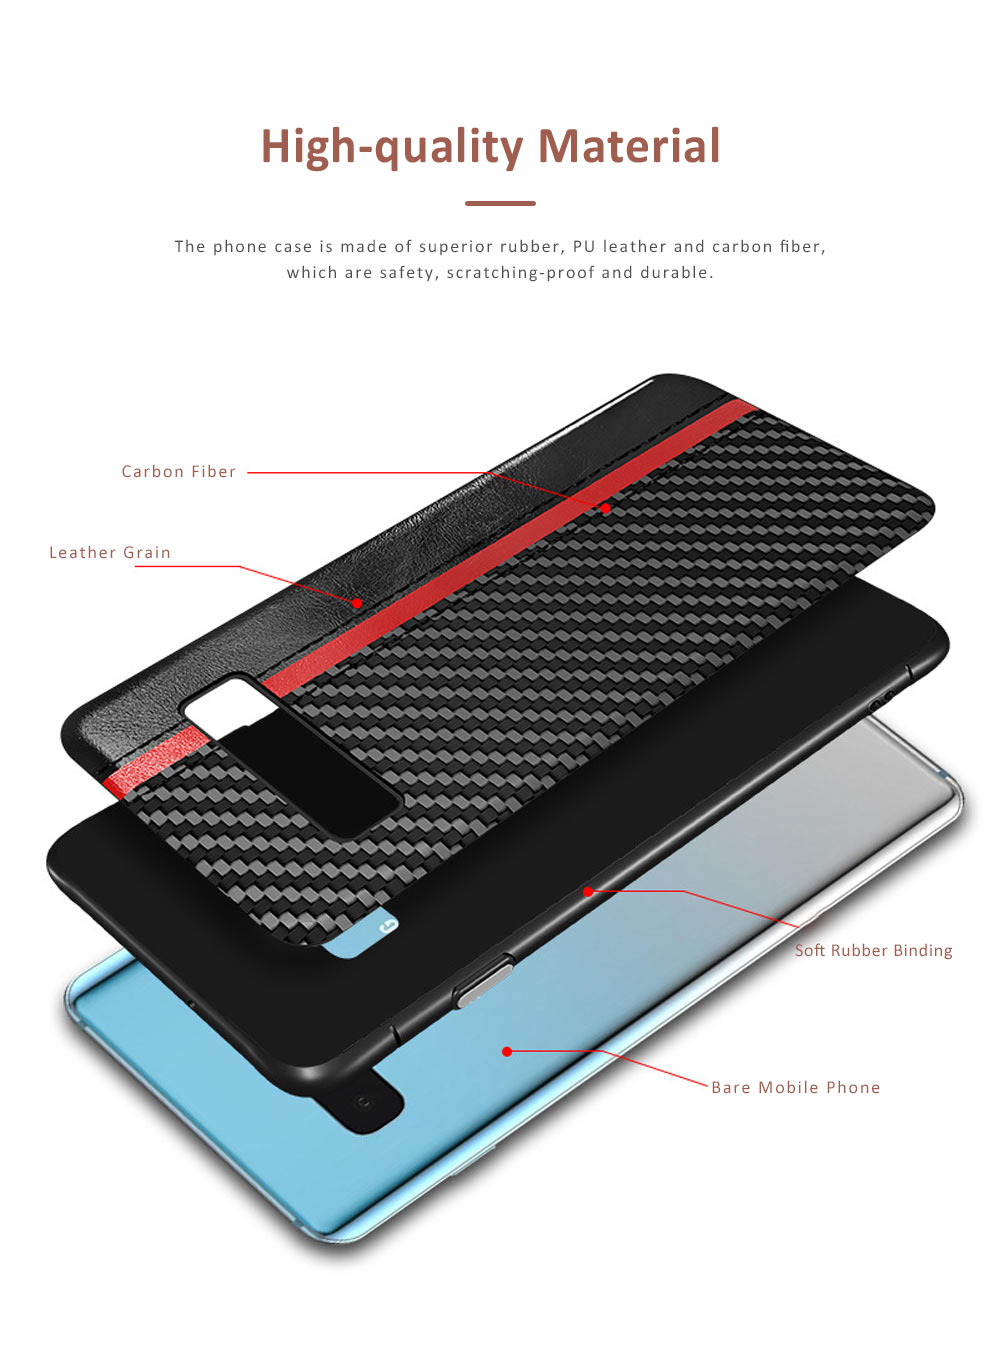 Minimalist Fashion Samsung Phone Case with PU Leather Carbon Fiber Combination, Business Mobile Phone Case for Samsung S8+ S9+ S10+ S10E 1